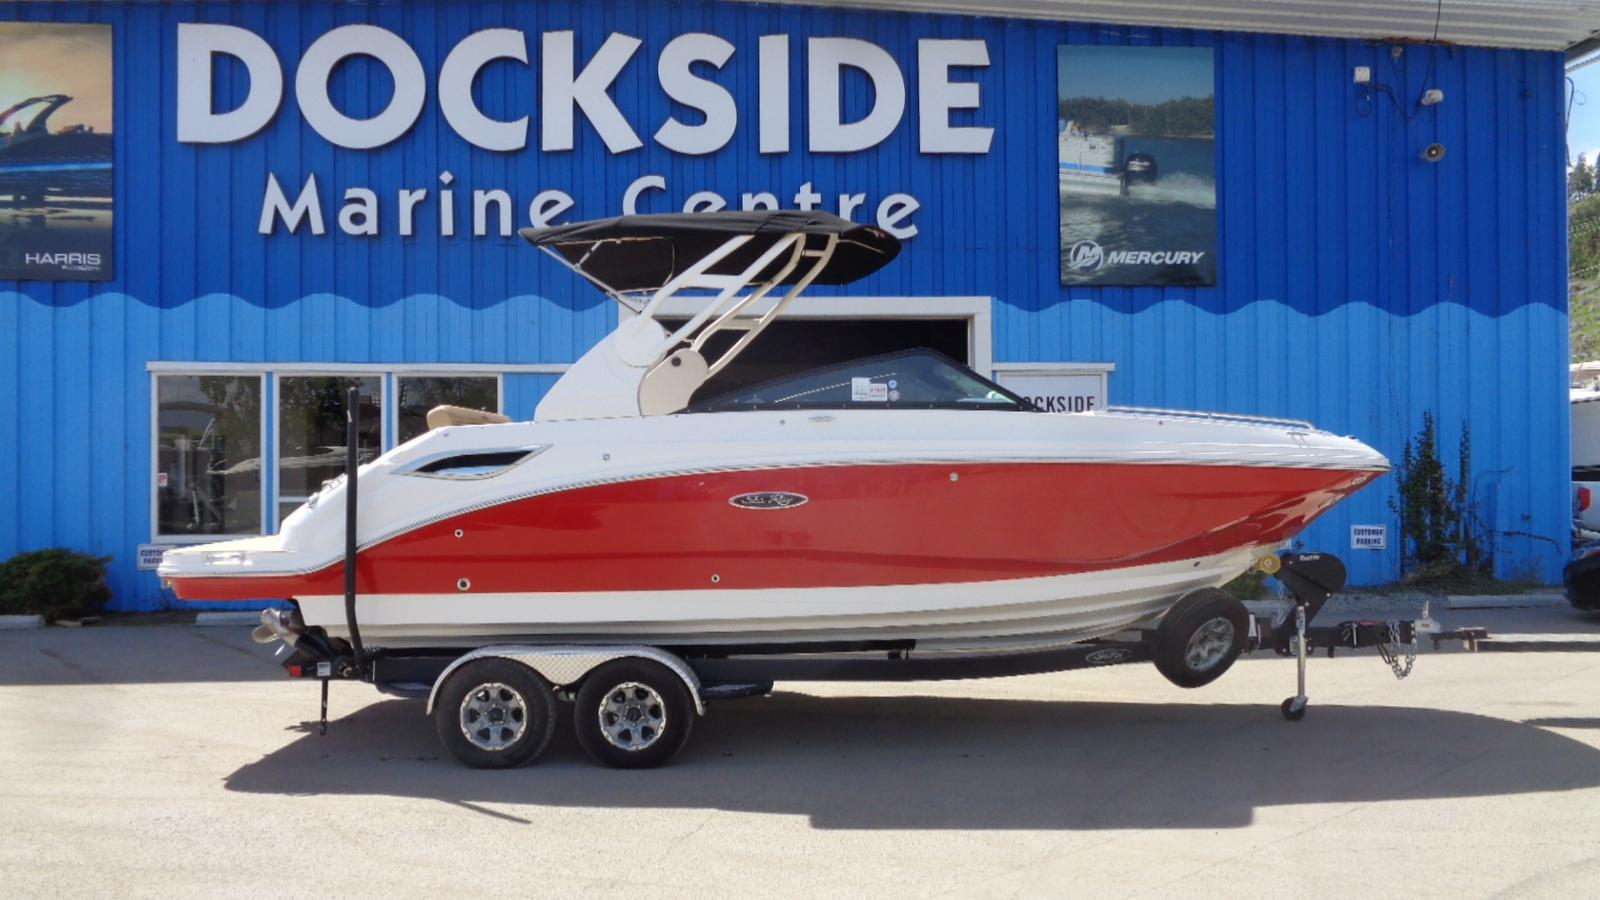 For Sale: 2019 Sea Ray Sdx 250 26ft<br/>Dockside Marine Centre, LTD.